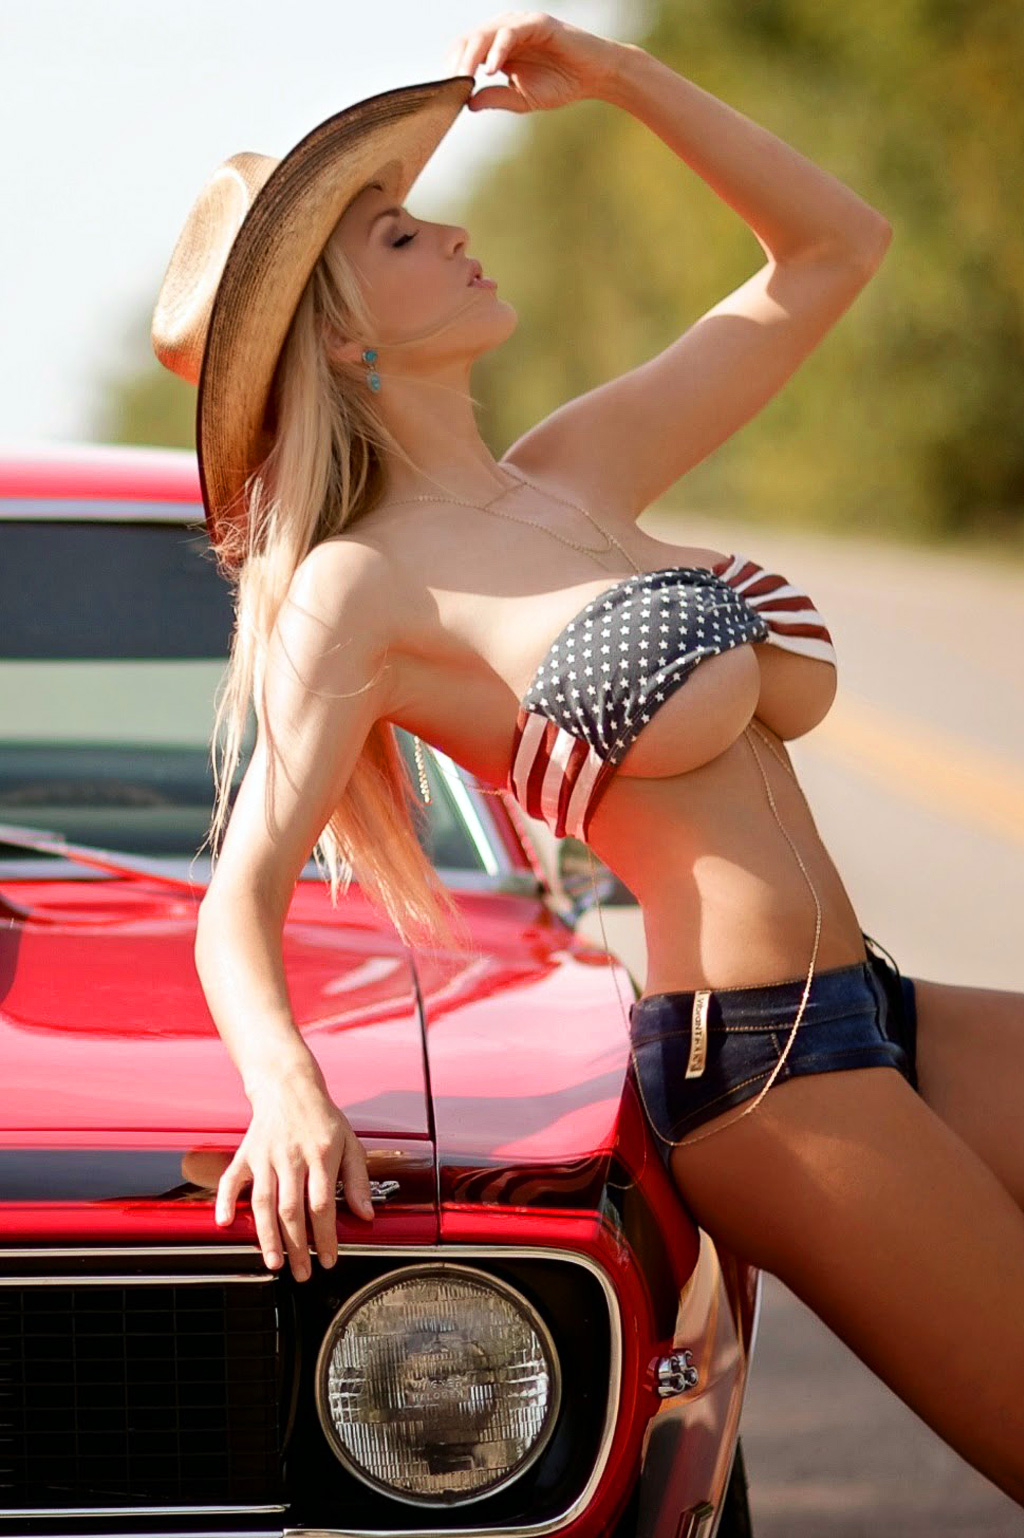 cars-girls-women-babes-bitches-nude-kiwi-porn